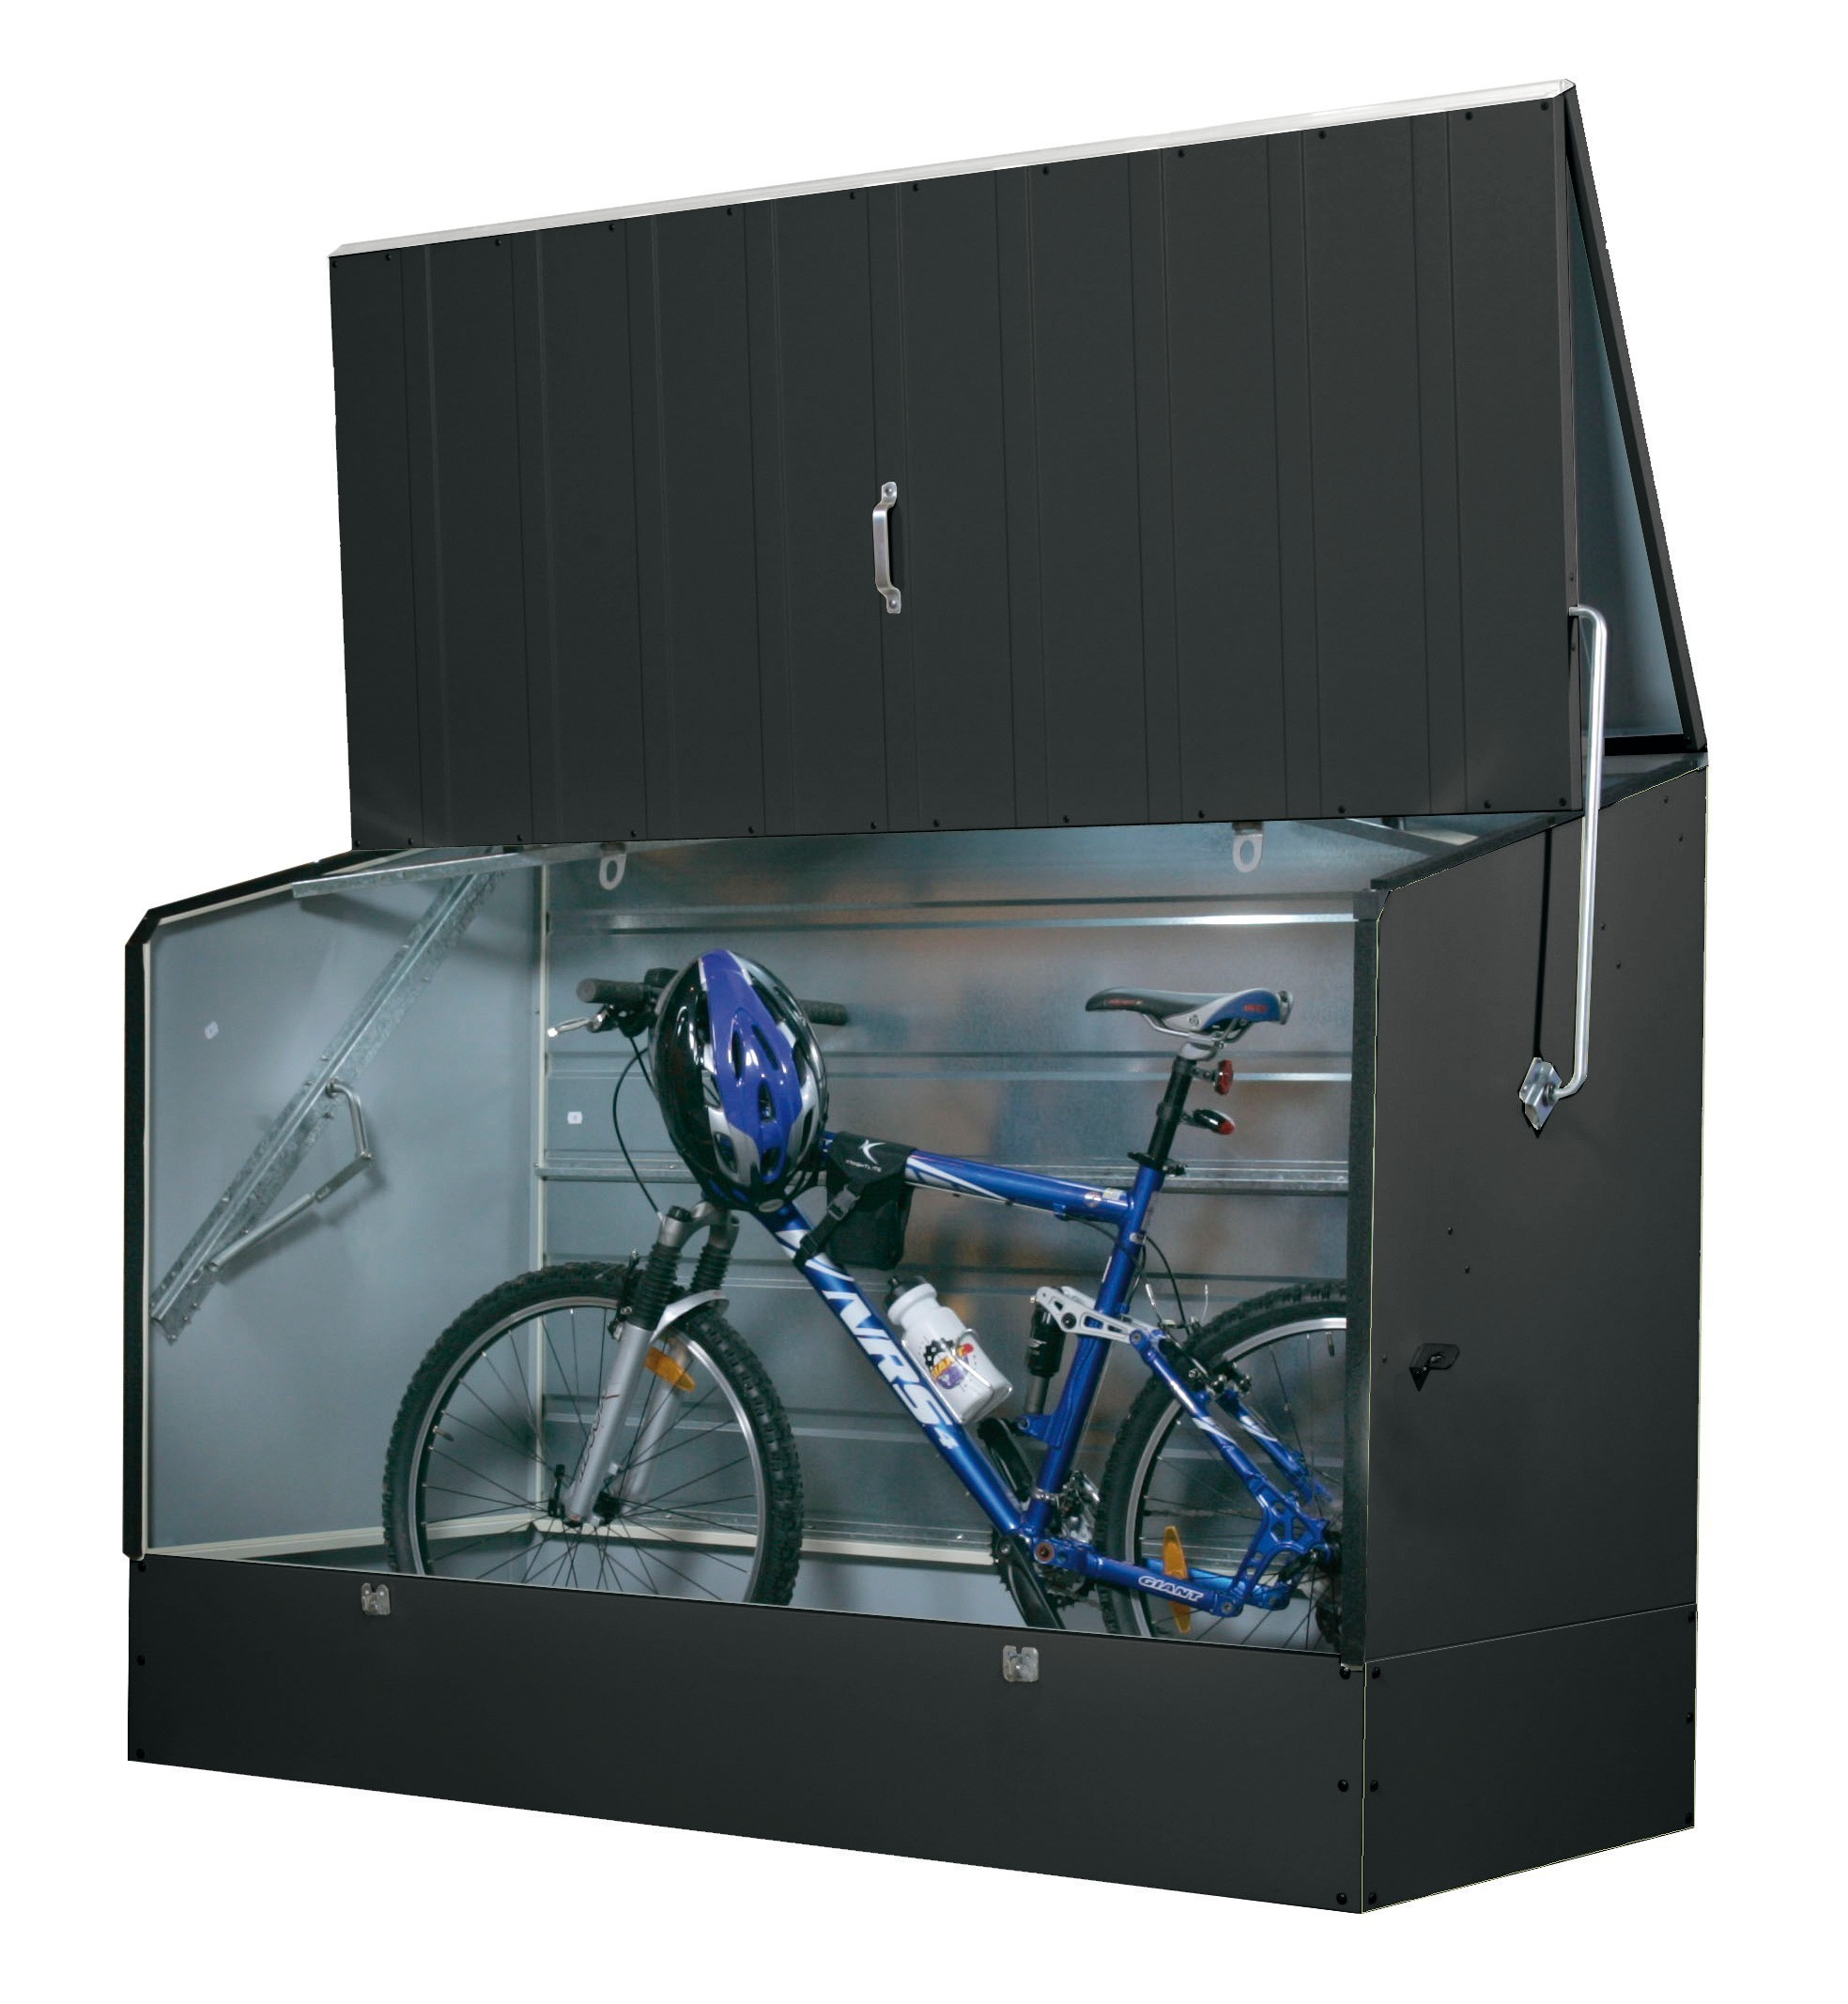 fahrradbox fahrradgarage tepro metall 196 x 89 x 133 cm. Black Bedroom Furniture Sets. Home Design Ideas